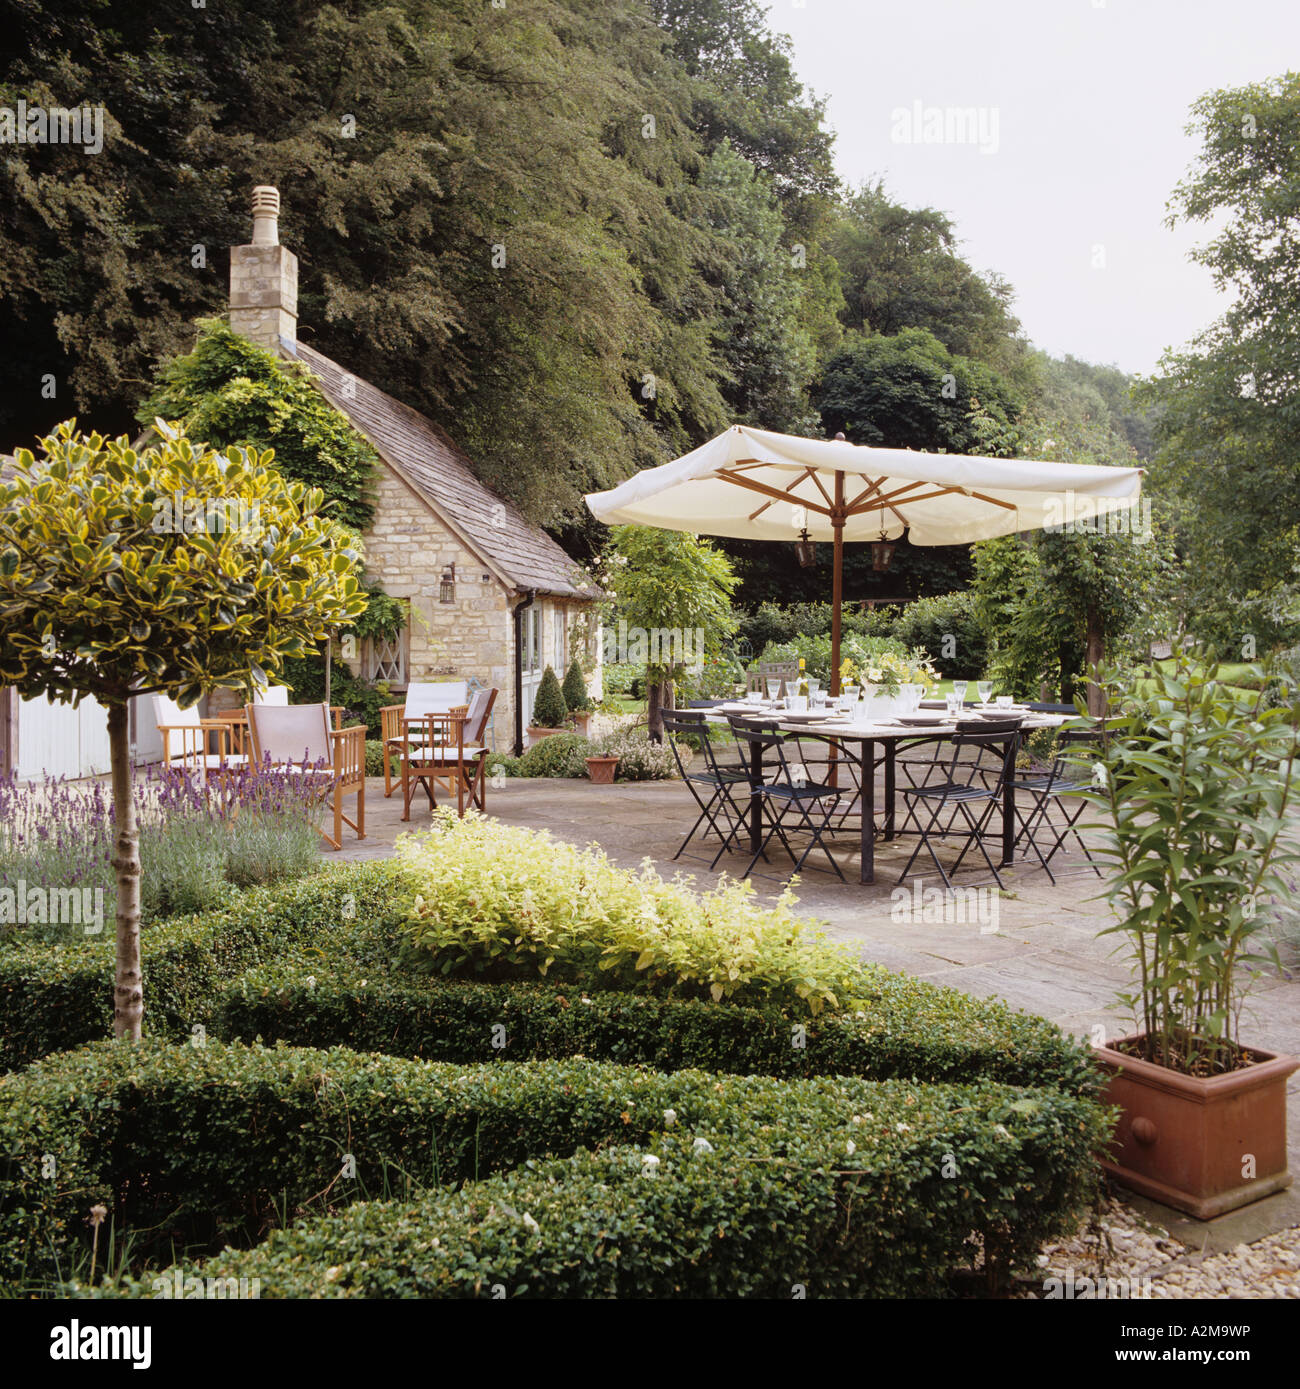 Parasol and table set in cottage garden with topiary hedge - Stock Image